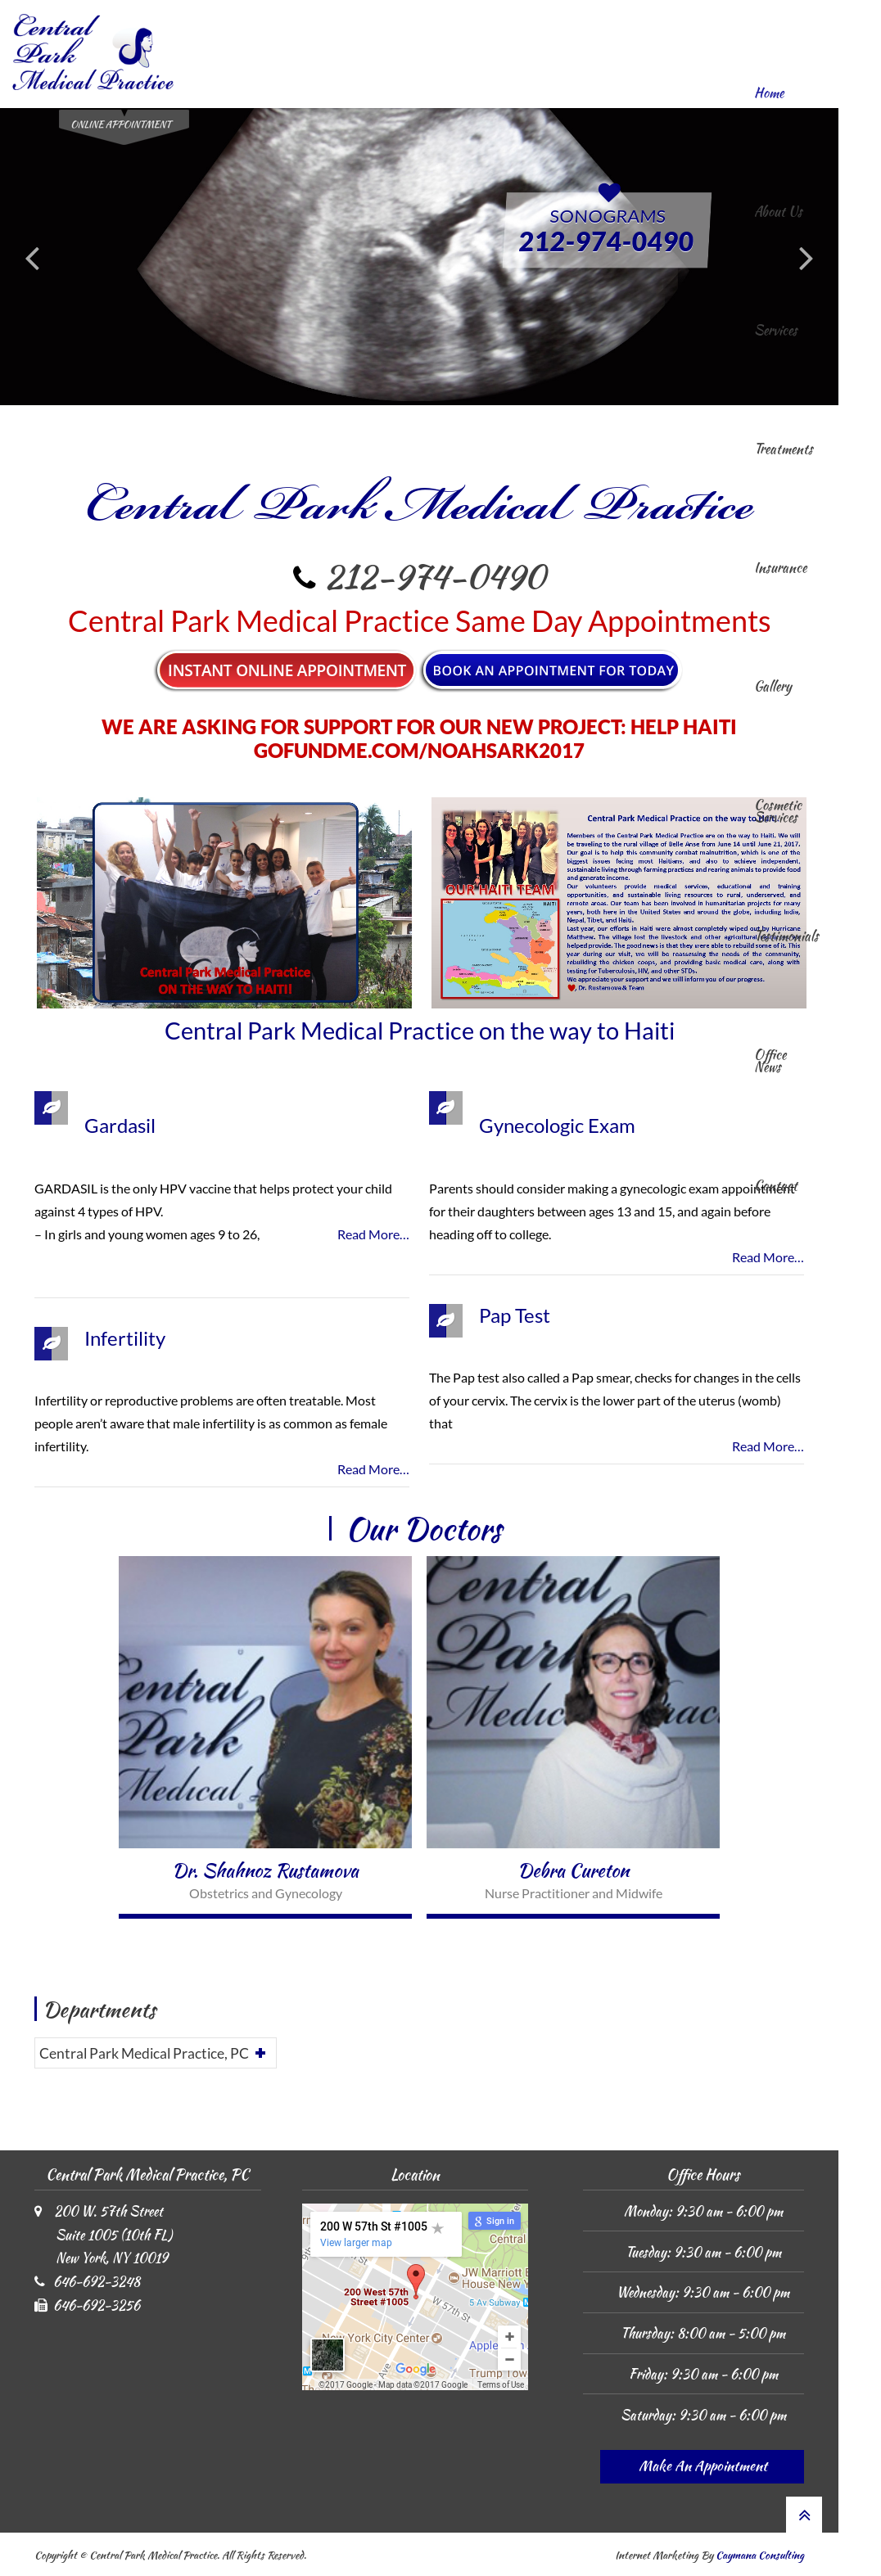 Central Park Medical Competitors, Revenue and Employees